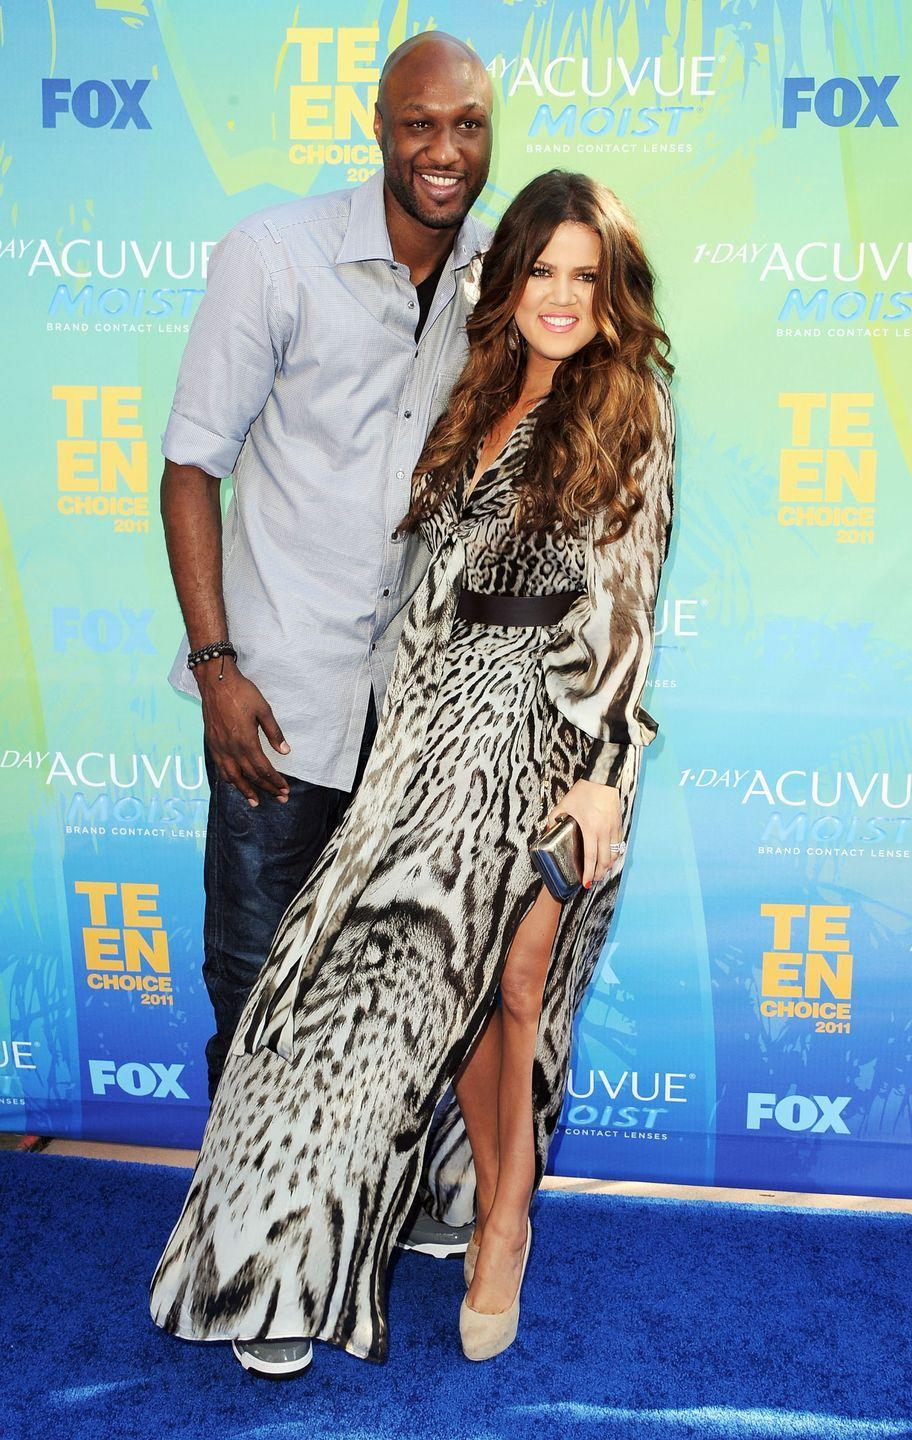 """<p>After only a month of dating, Khloé and Lamar married and gave us a Kardashian spinoff show that made us swoon every Sunday. That is, until news broke that Lamar had been struggling with substance abuse (which Khloé knew about) and cheating on Koko (which she didn't). The couple stayed together at first and tried to reconcile, according to <a href=""""https://people.com/celebrity/khlo-kardashian-files-for-divorce-from-lamar-odom/"""" rel=""""nofollow noopener"""" target=""""_blank"""" data-ylk=""""slk:People"""" class=""""link rapid-noclick-resp""""><em>People</em></a>, but Khloé filed for divorce in 2013.</p>"""